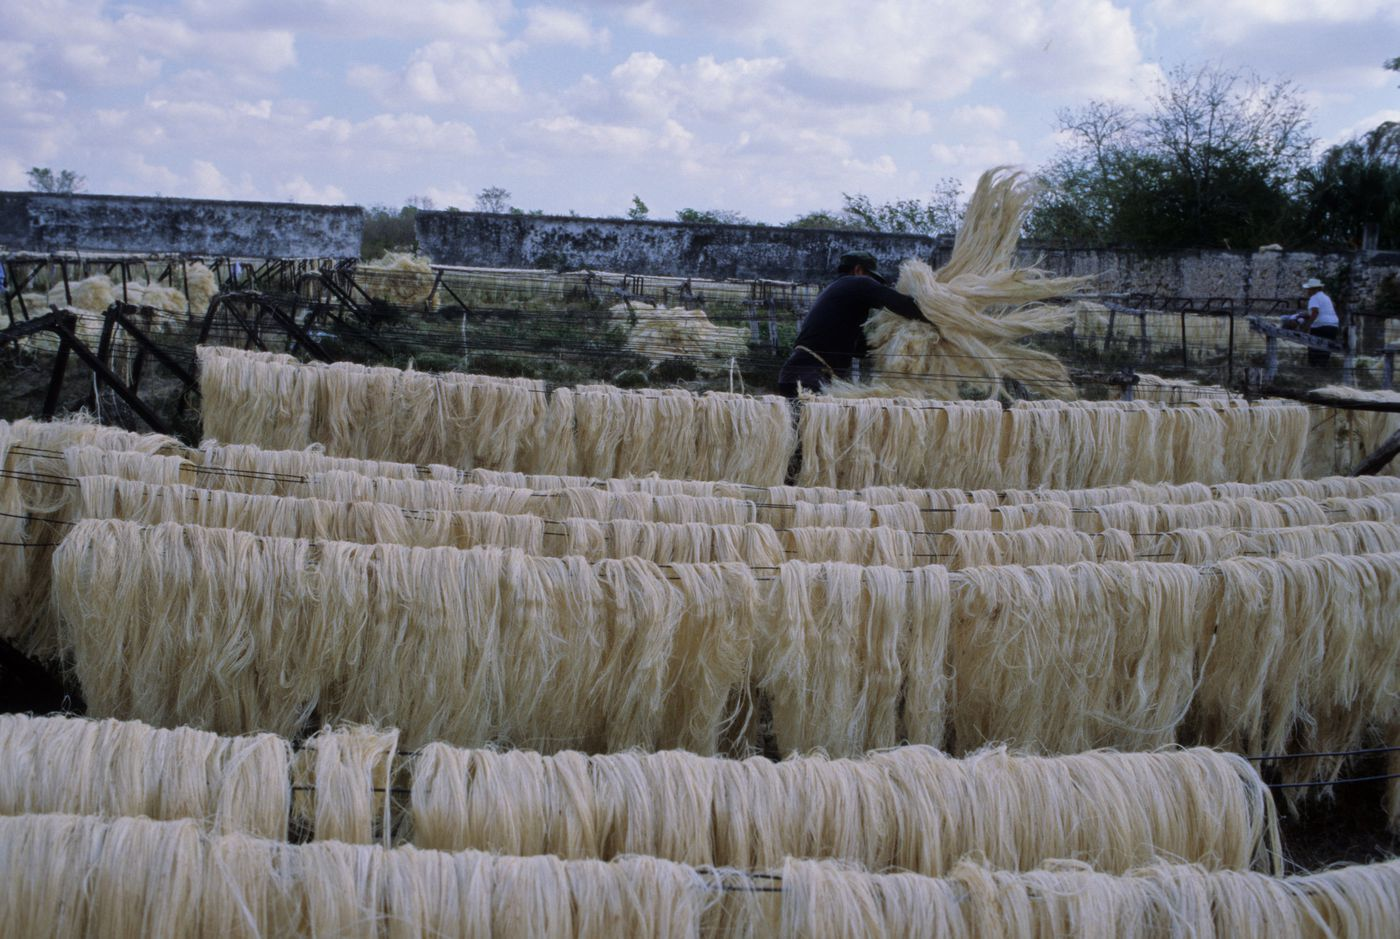 Rows of hemp fibers drying in the sun on a hacienda in Chac, Yucatan, Mexico.